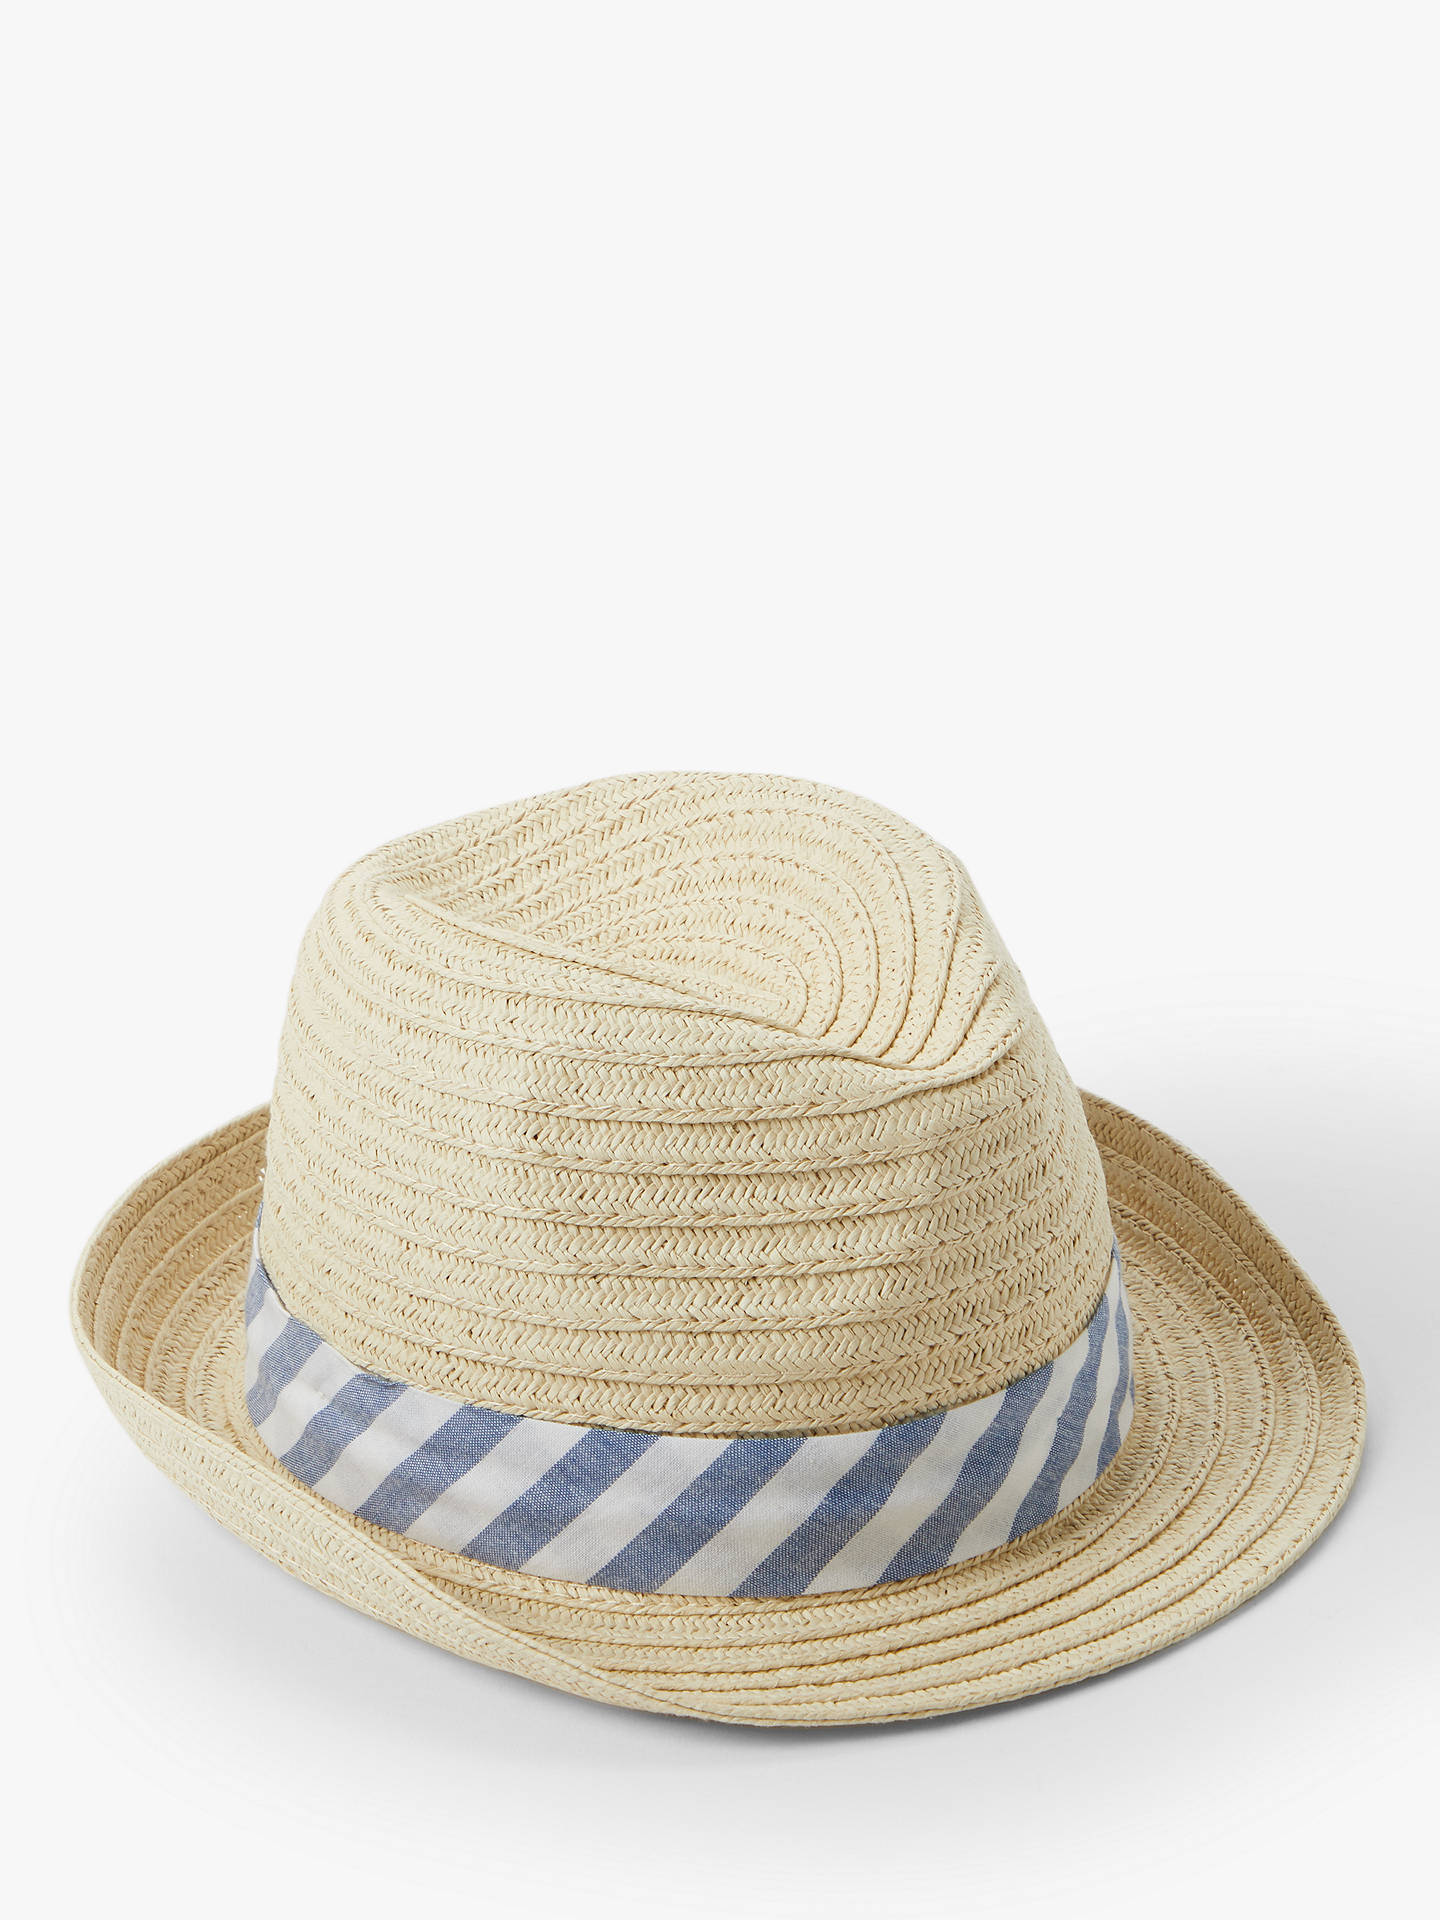 57589a0dc1a14 Buy John Lewis   Partners Baby s Straw Trilby Woven Hat